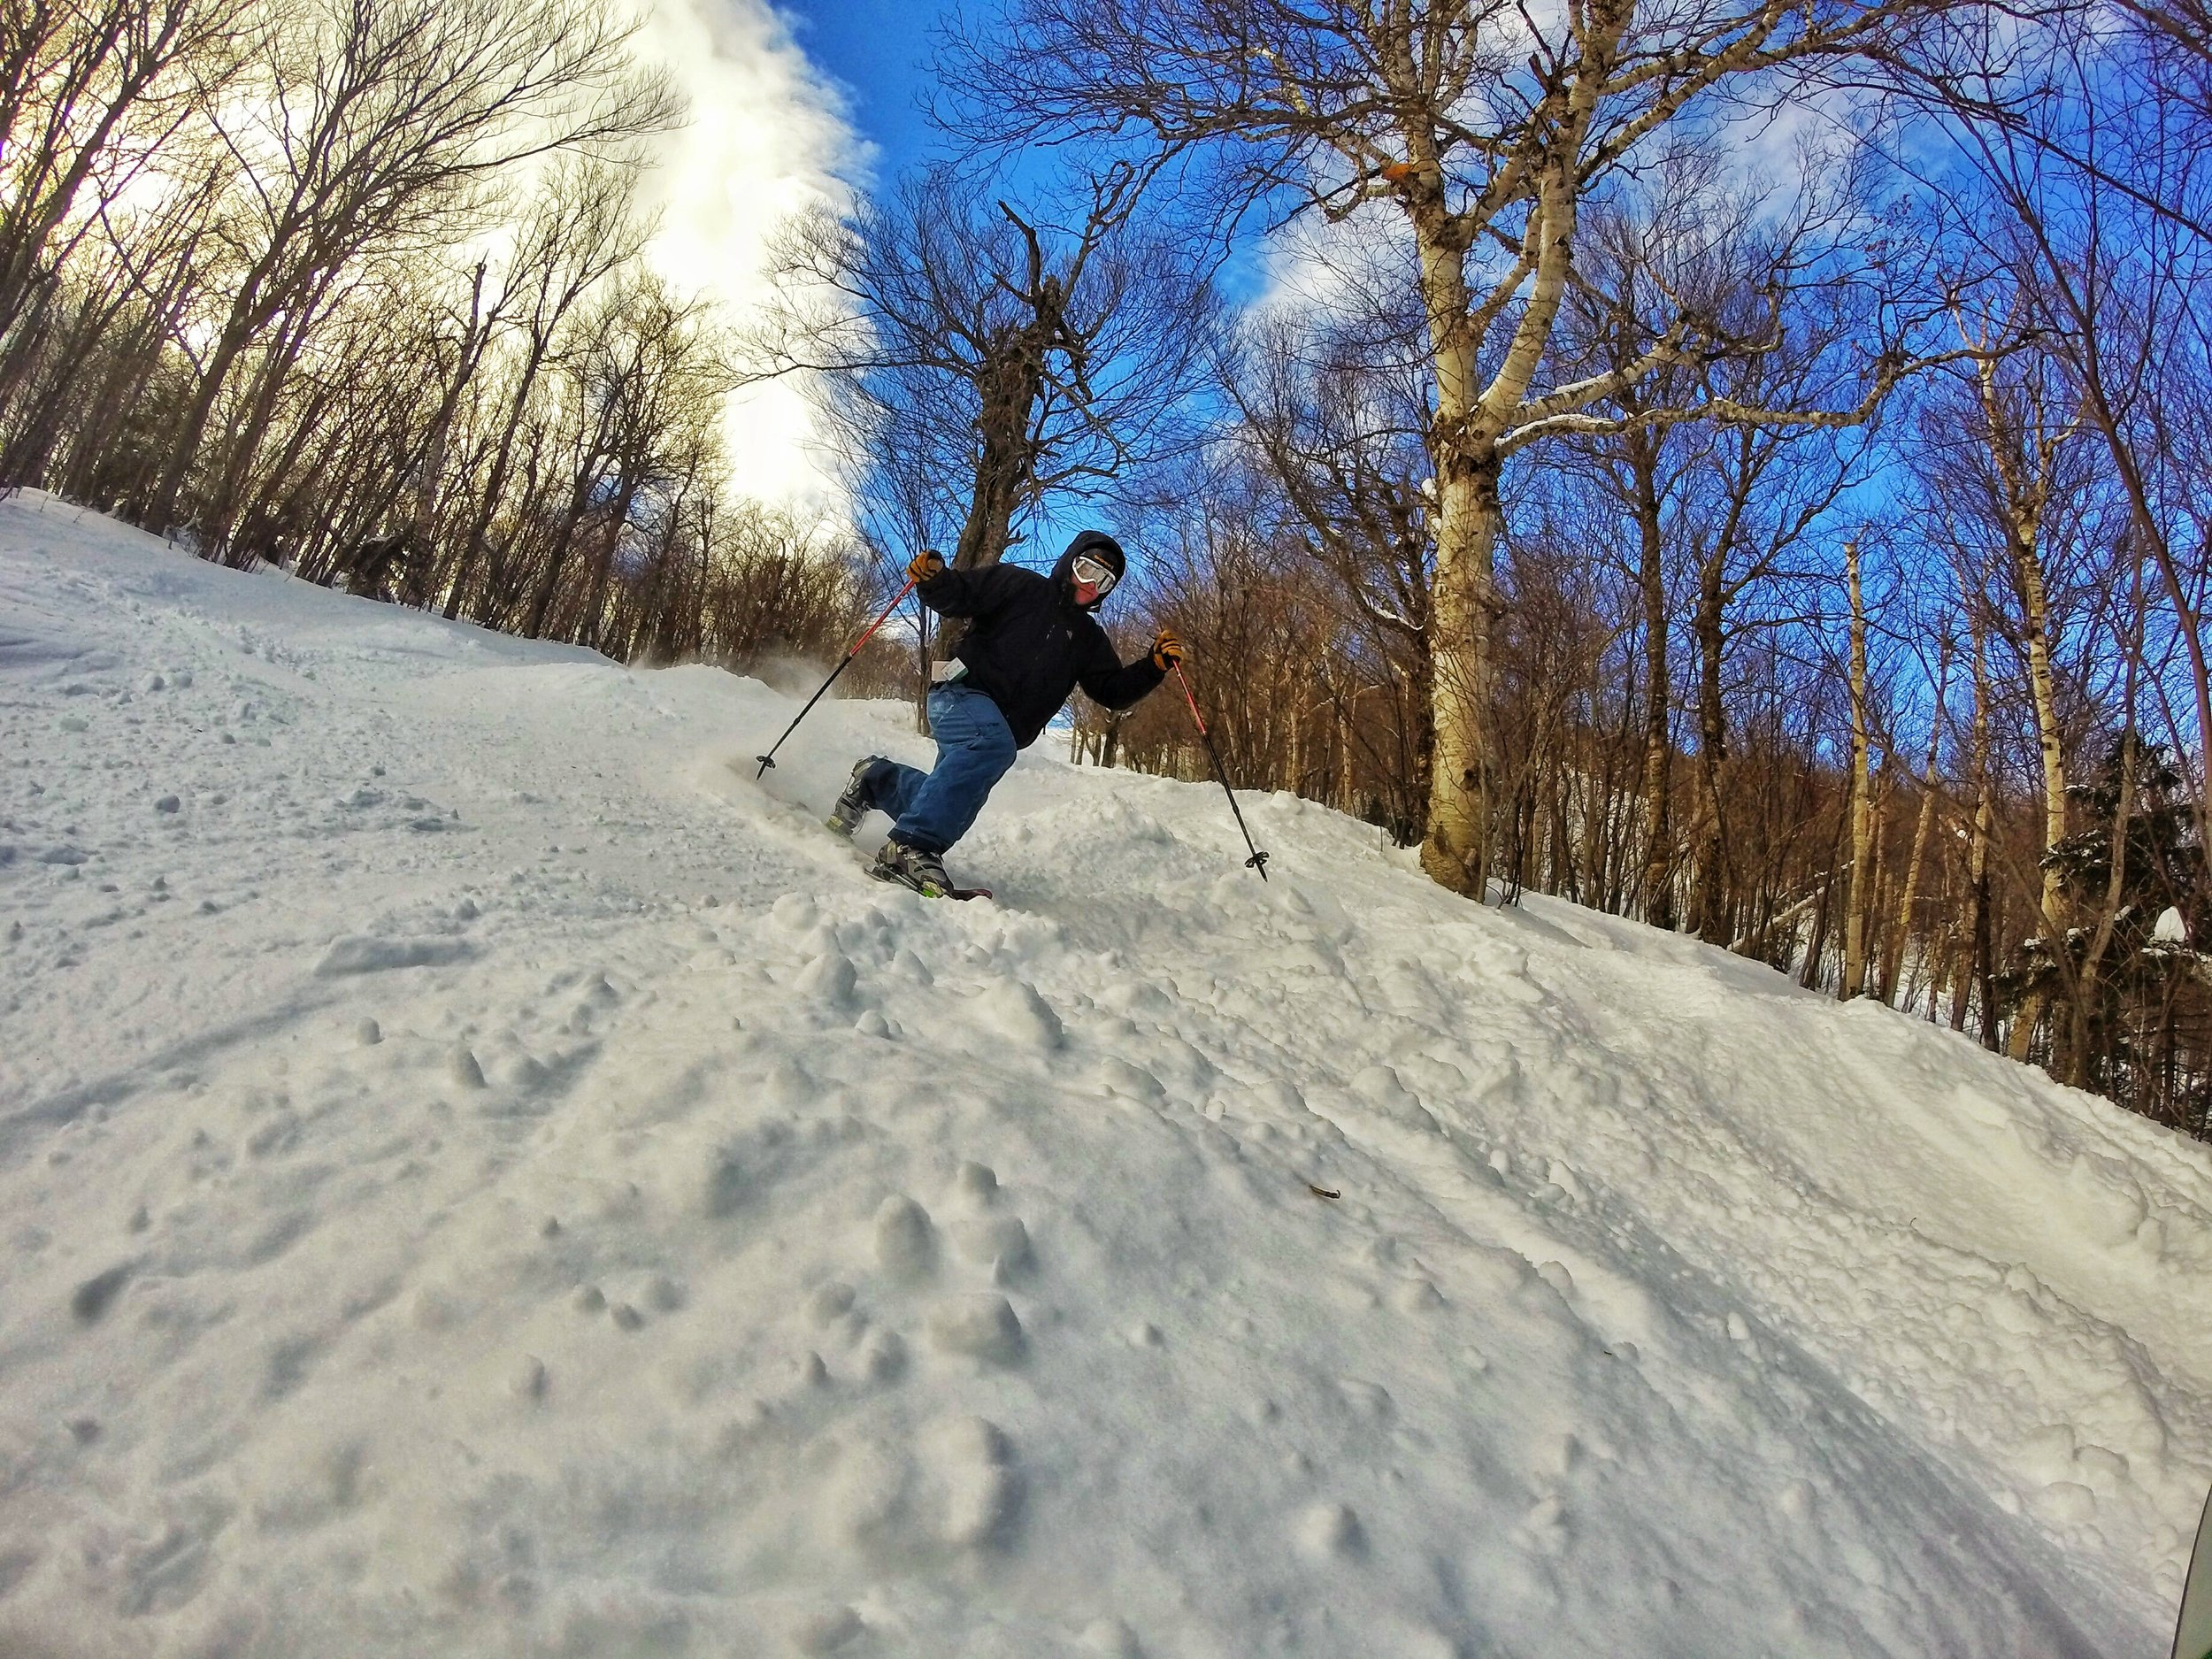 The Best Ski Resorts in the East for Skiing Trees